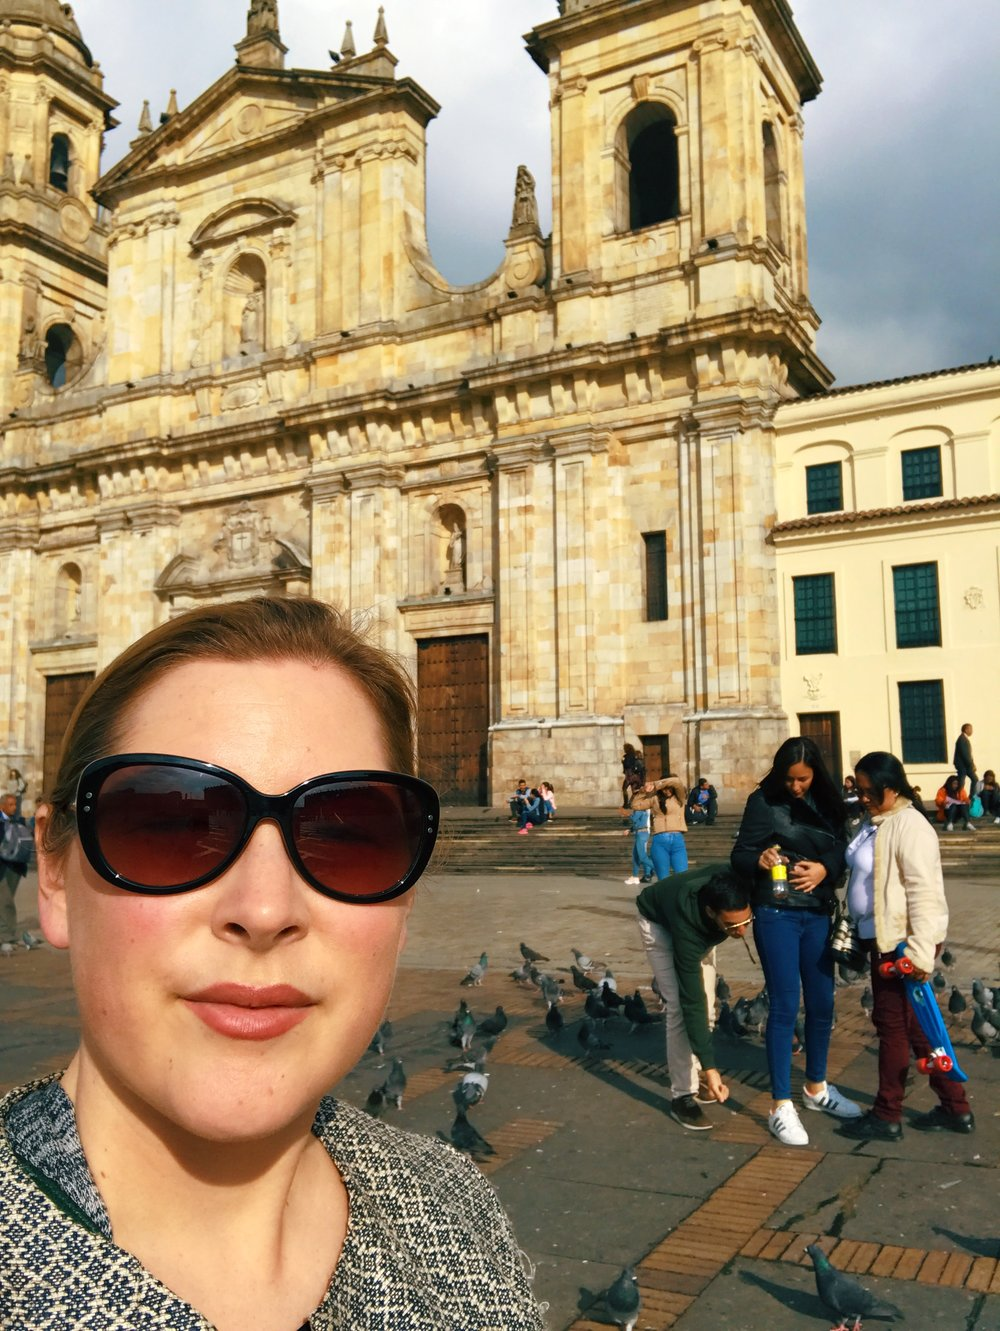 Hi from Plaza de Bolivar. Right after I interviewed Andrew, I hopped on a plane and flew to Colombia. I lost these sunglasses at the end of the trip and had to buy new ones in Mexico. The end.